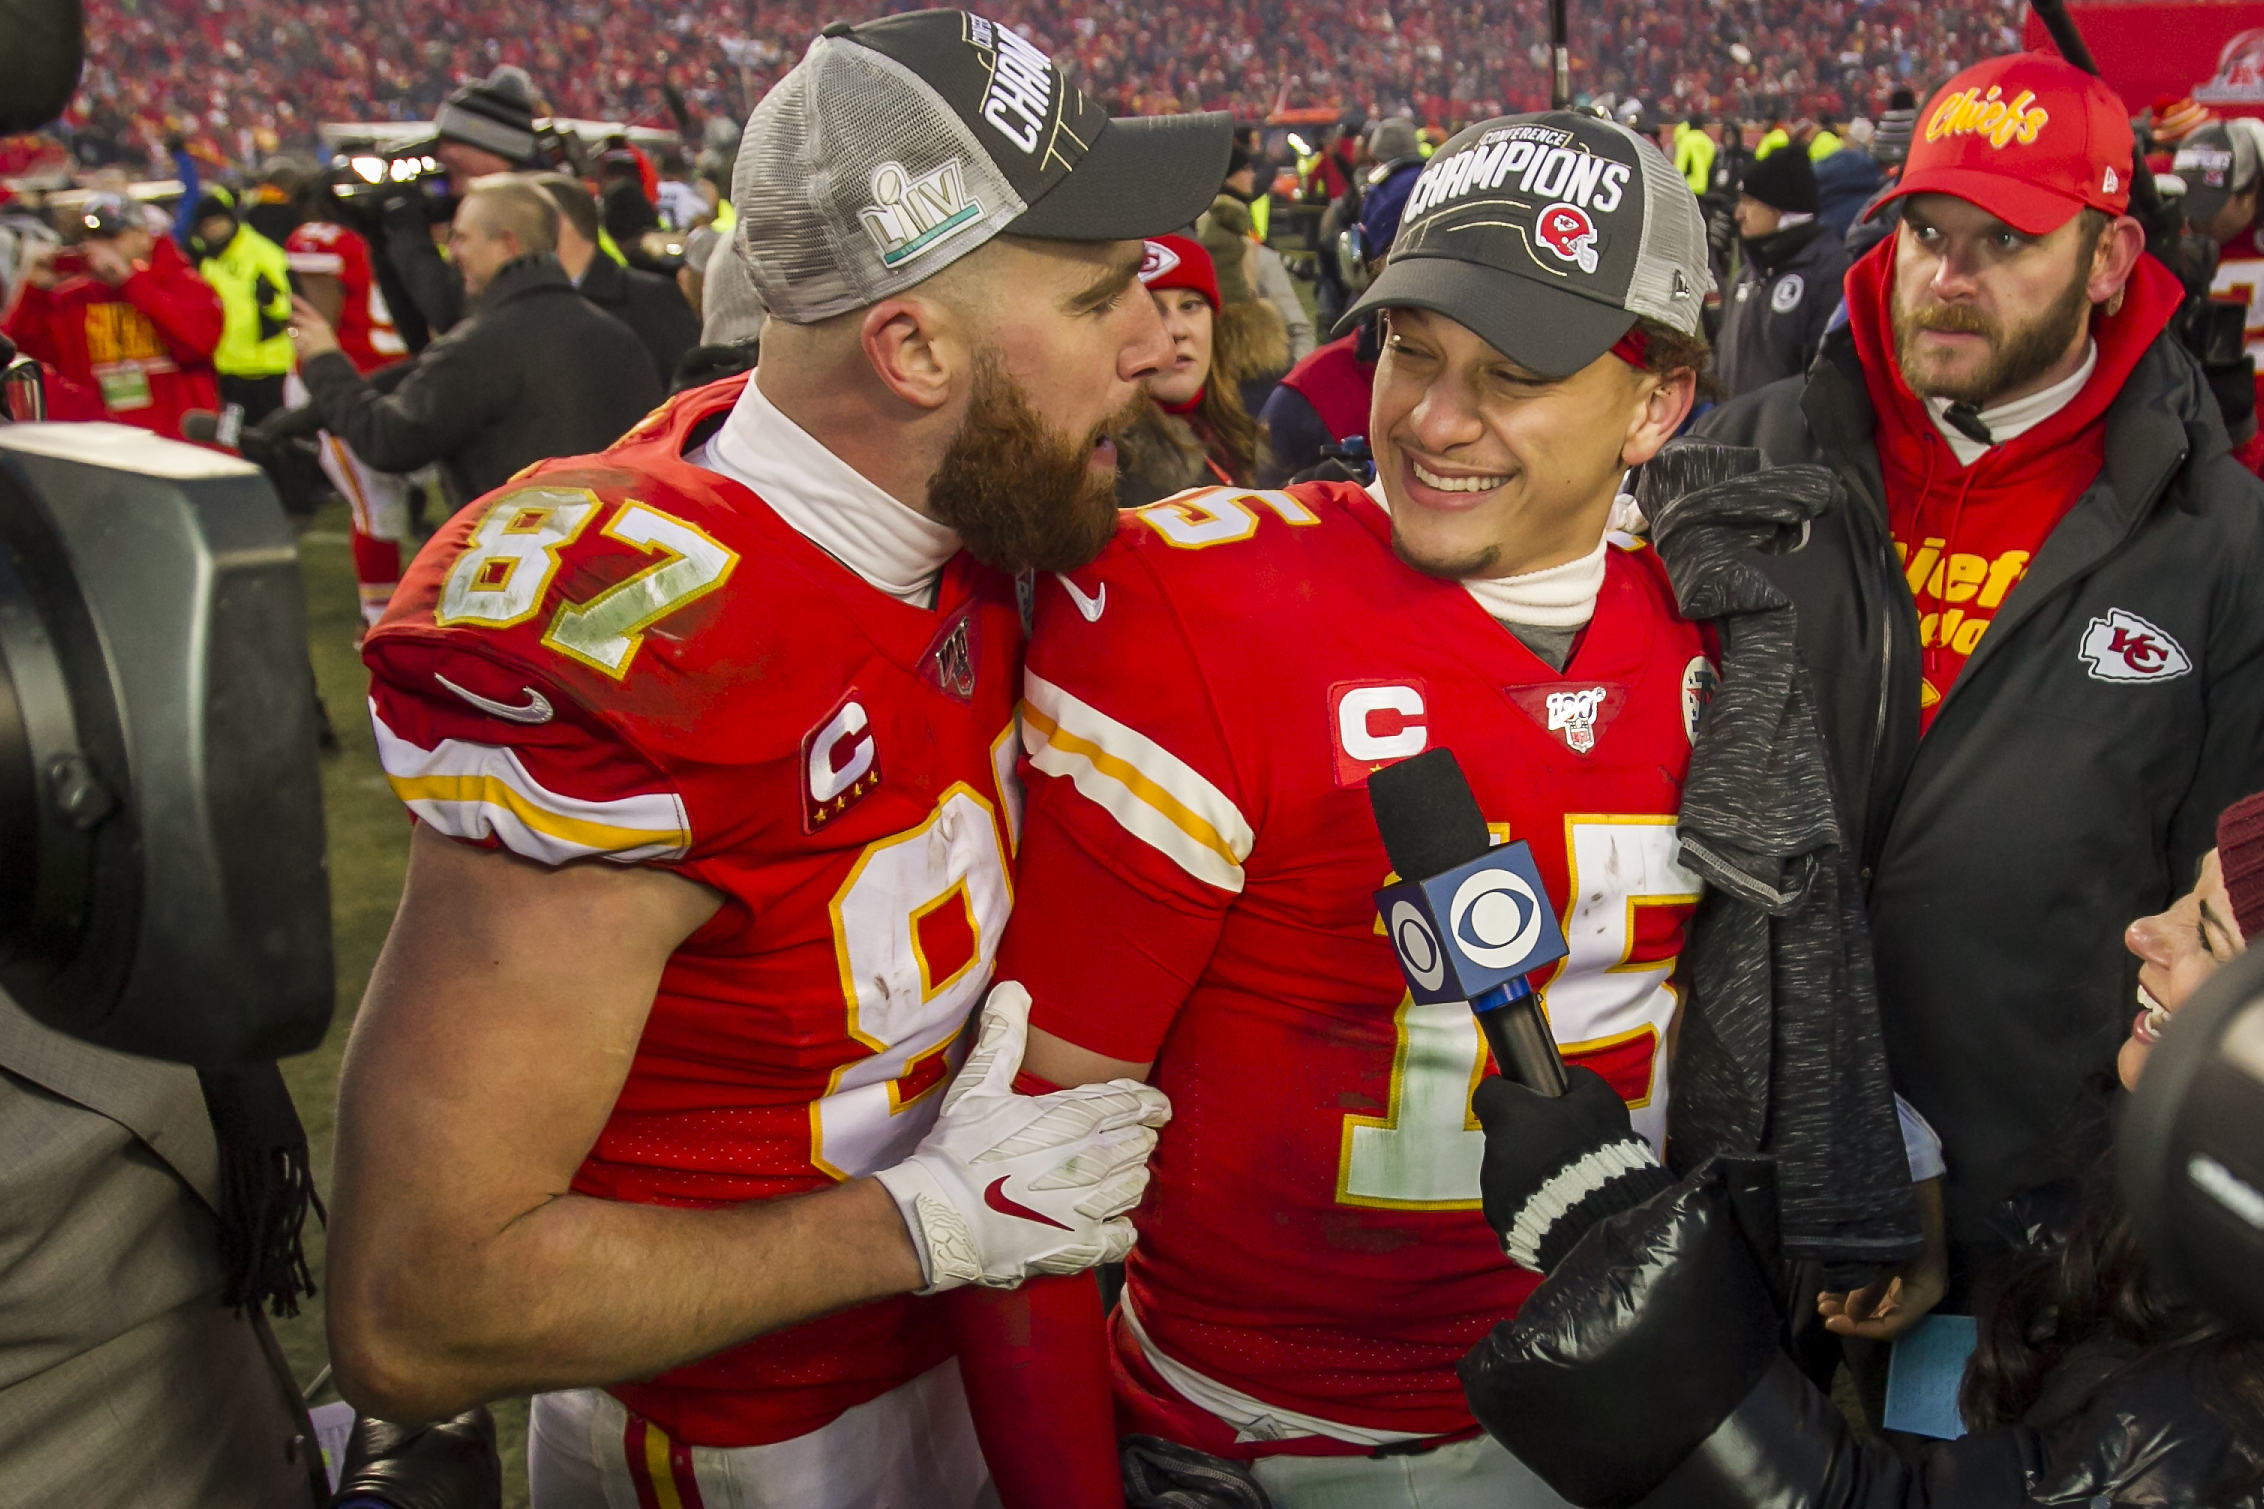 The Chiefs' Travis Kelce and Patrick Mahomes